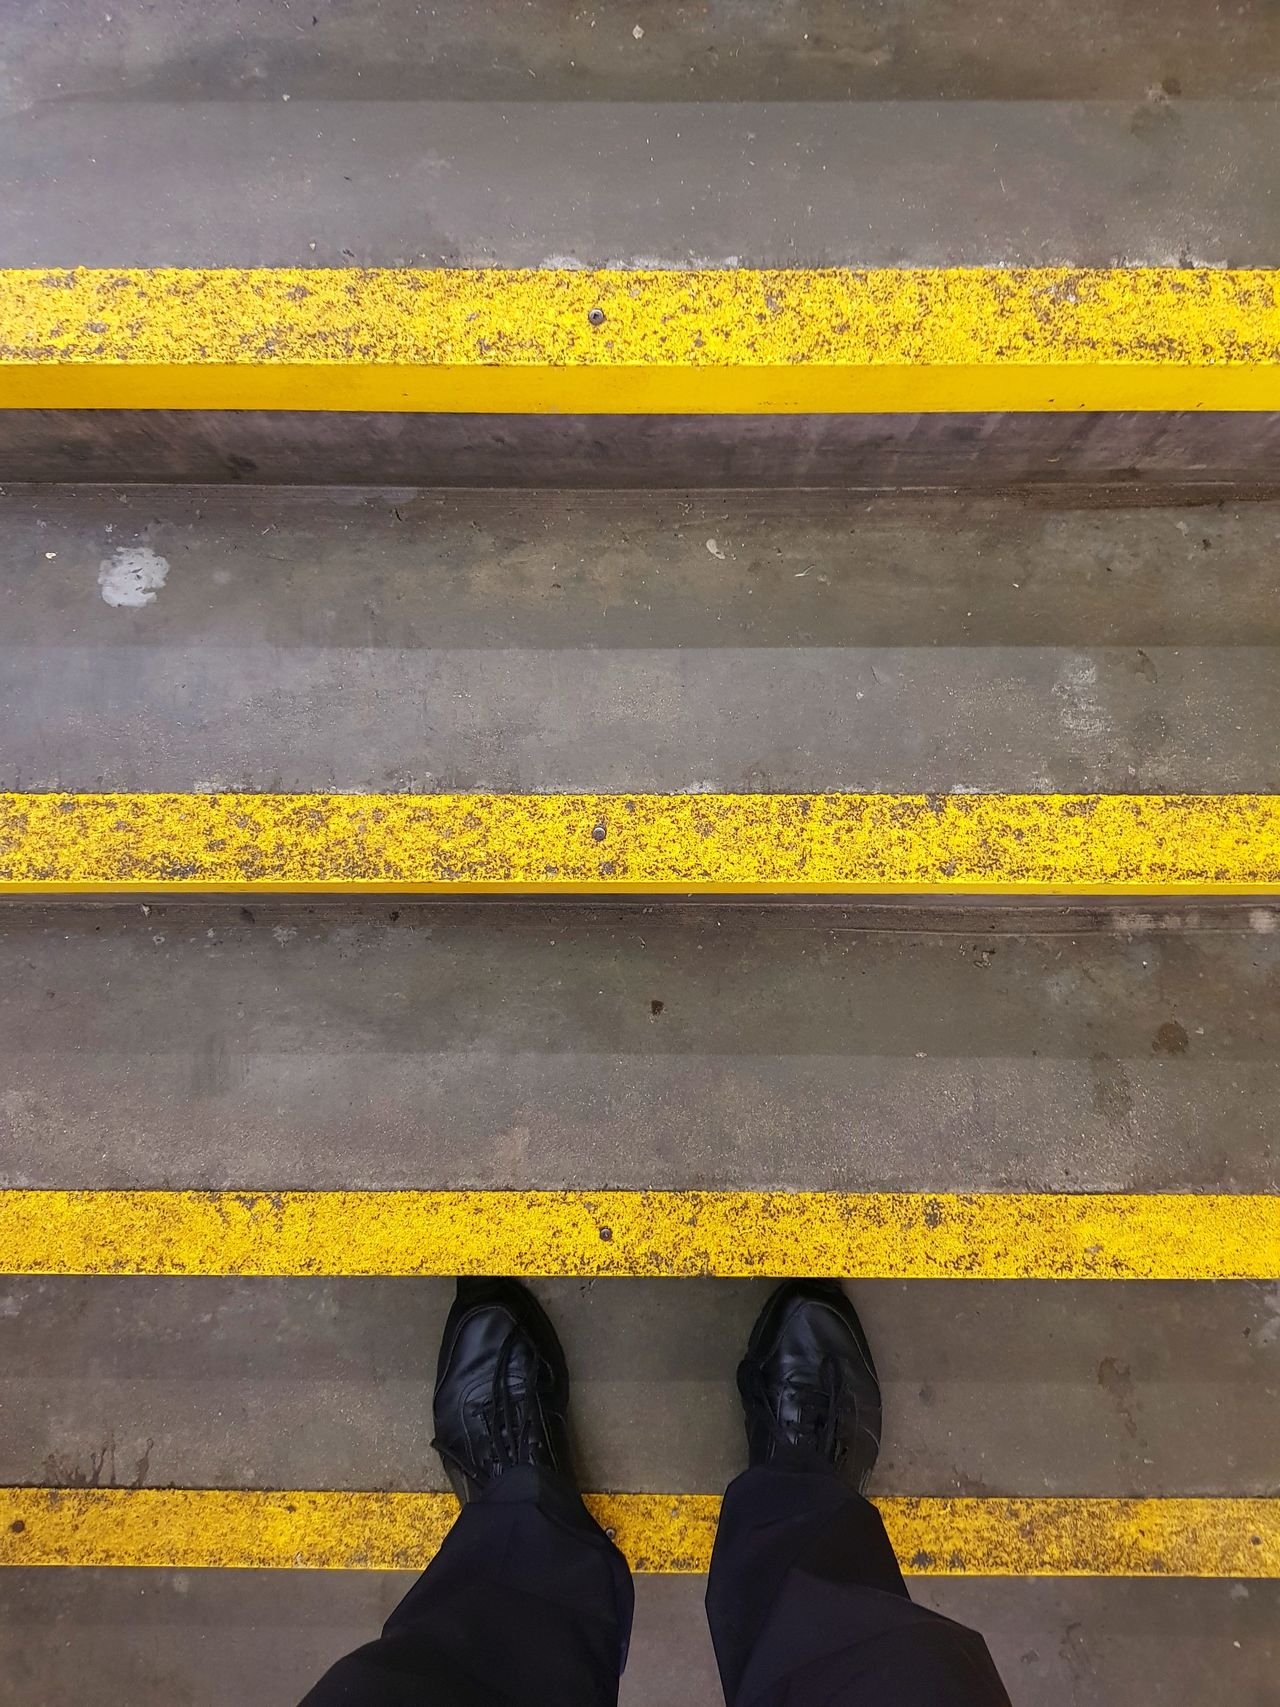 On the stairs Yellow Street Shoe Low Section Asphalt Backgrounds Human Body Part Feet Feets Stairs Stairs_collection Steps Steps And Staircases Steps And Stairs Person Personal Perspective My Point Of View Legs Legsselfie Stair Upstairs Downstairs The Photojournalist - 2017 EyeEm Awards Body Shot The Architect - 2017 EyeEm Awards